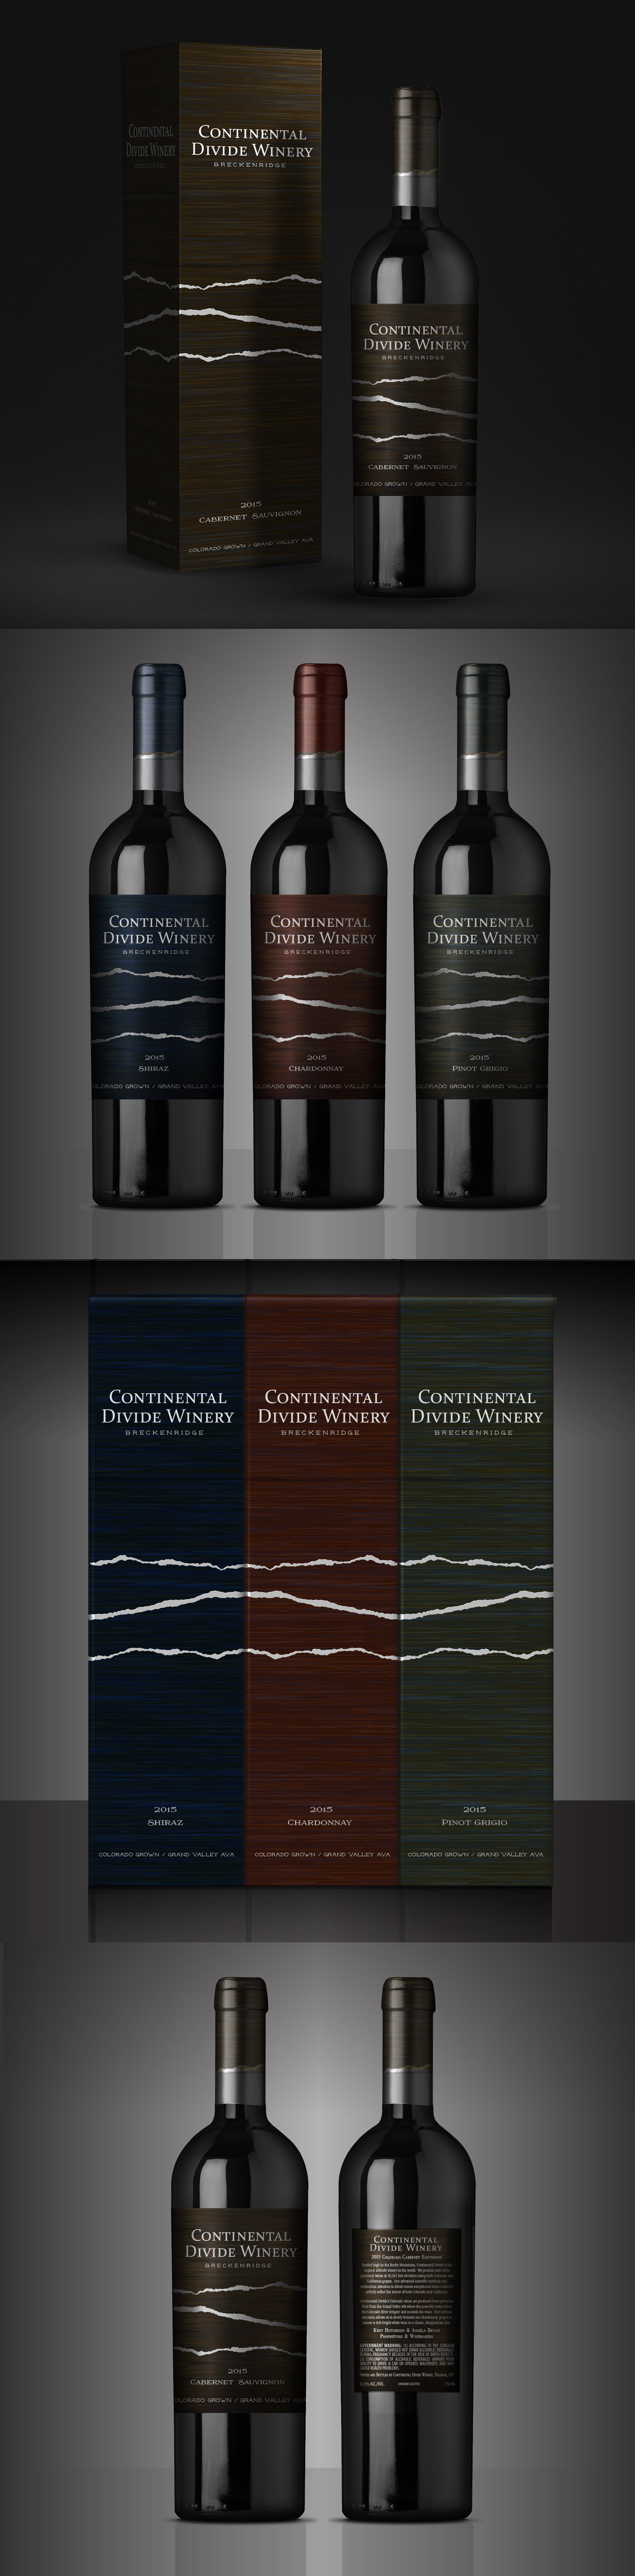 First in a series of clever and attractive wine label designs - additional work likely needed